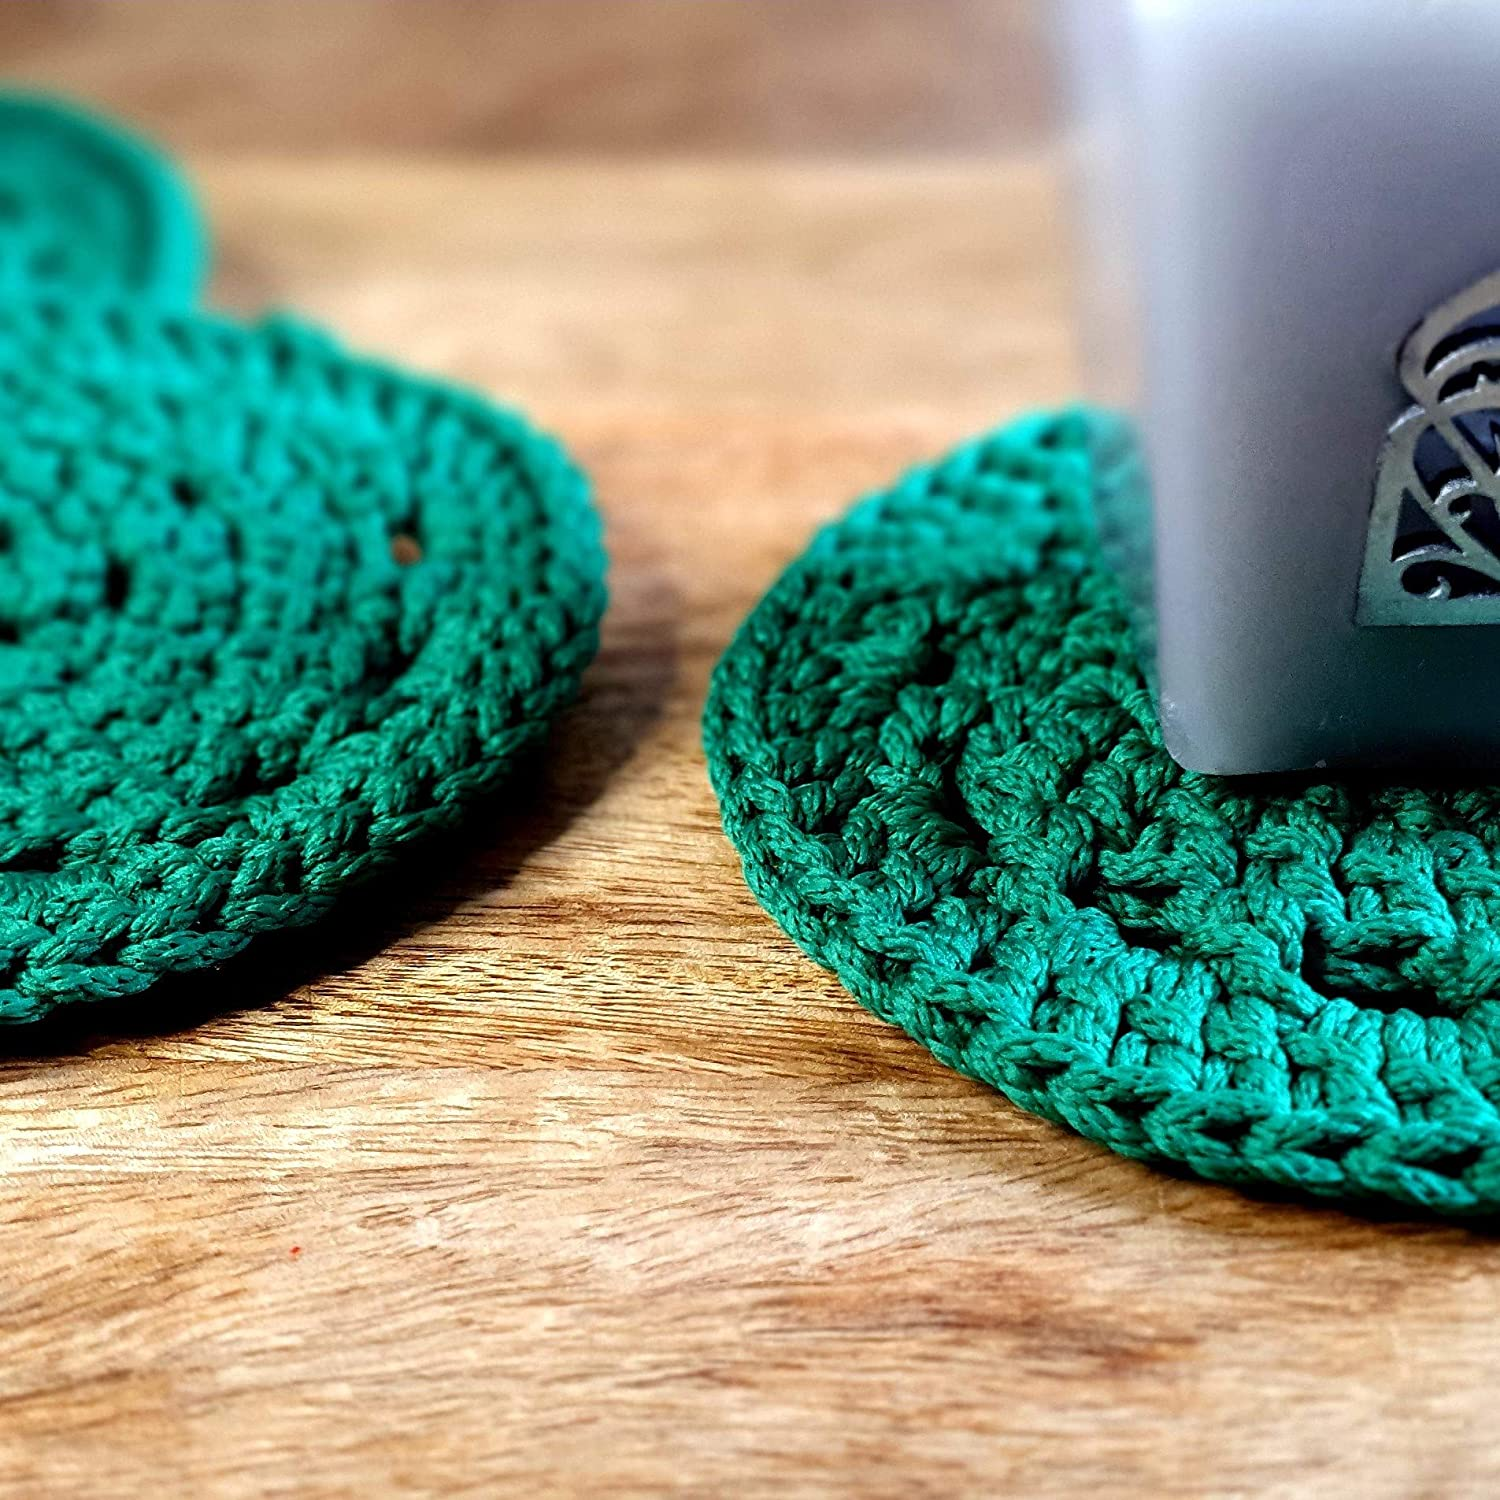 Crochet Chic Handmade Coasters Mug Mat Set Of 4 10x10cm Amazon Co Uk Handmade